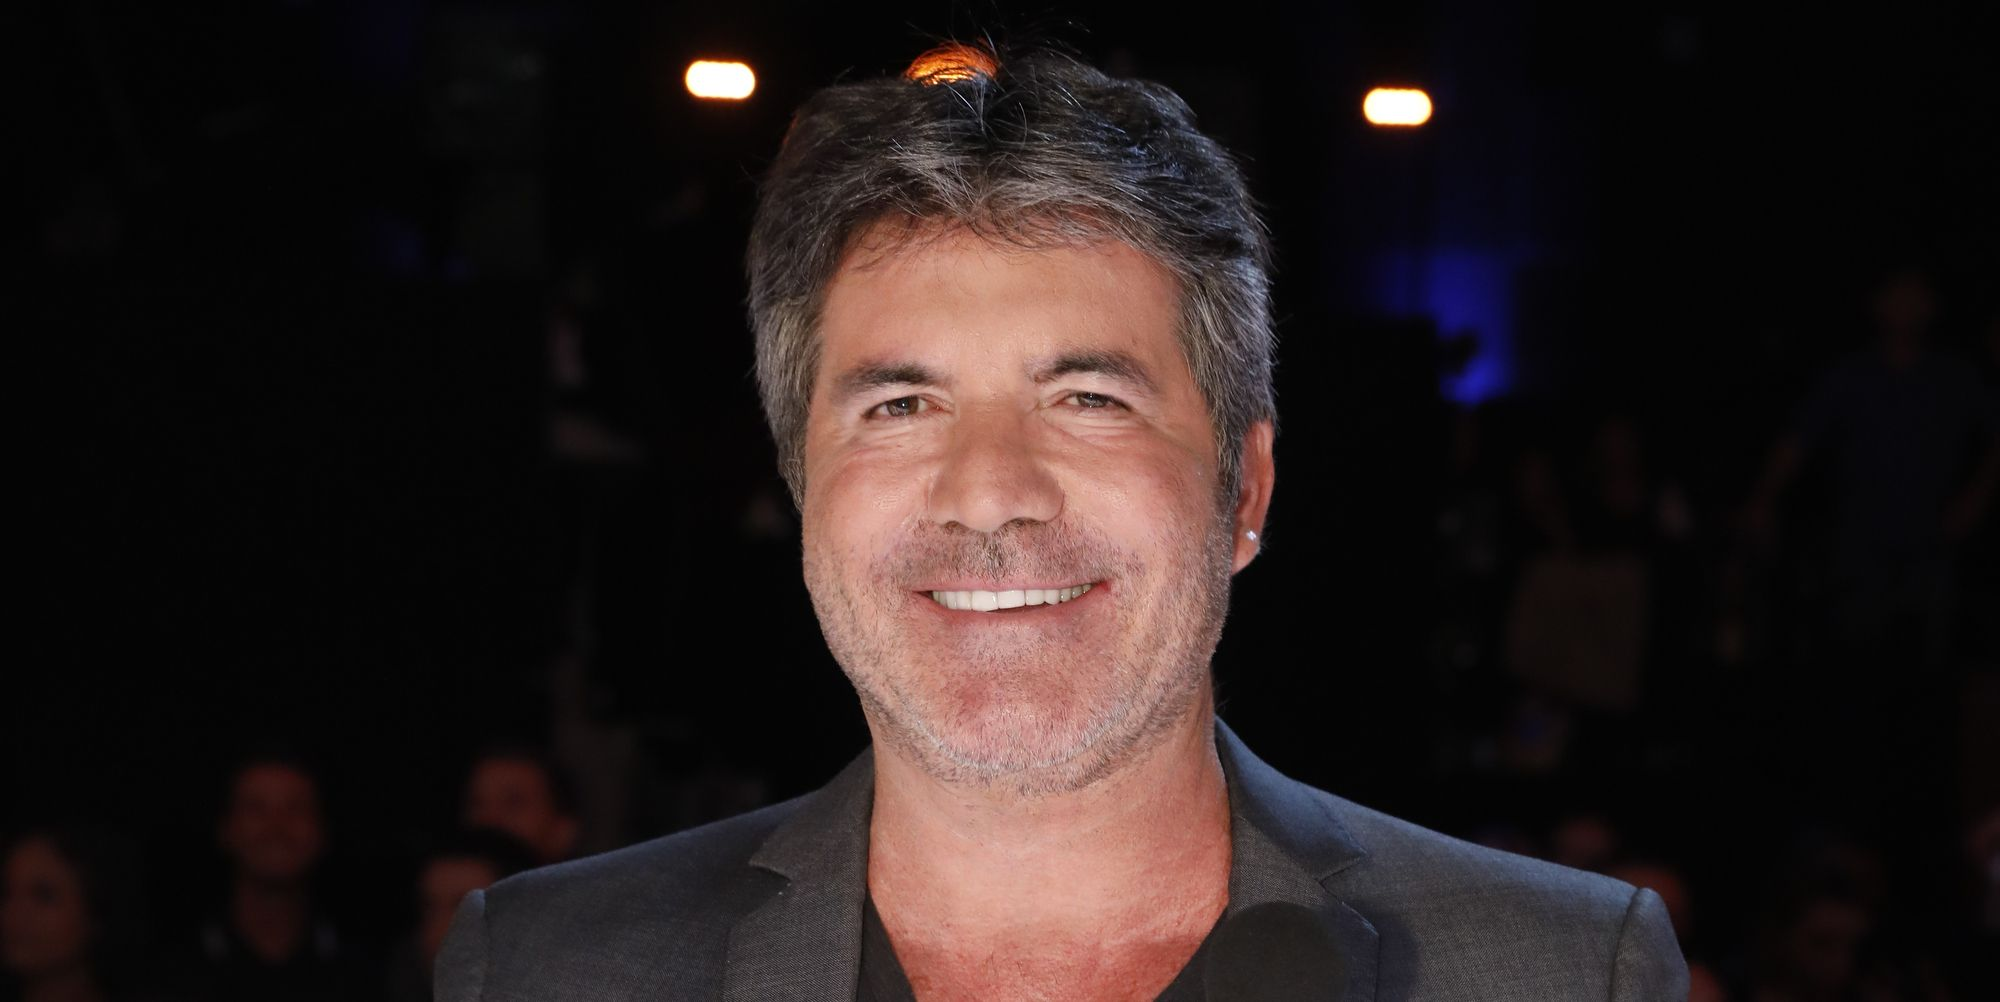 Simon Cowell on 'America's Got Talent'